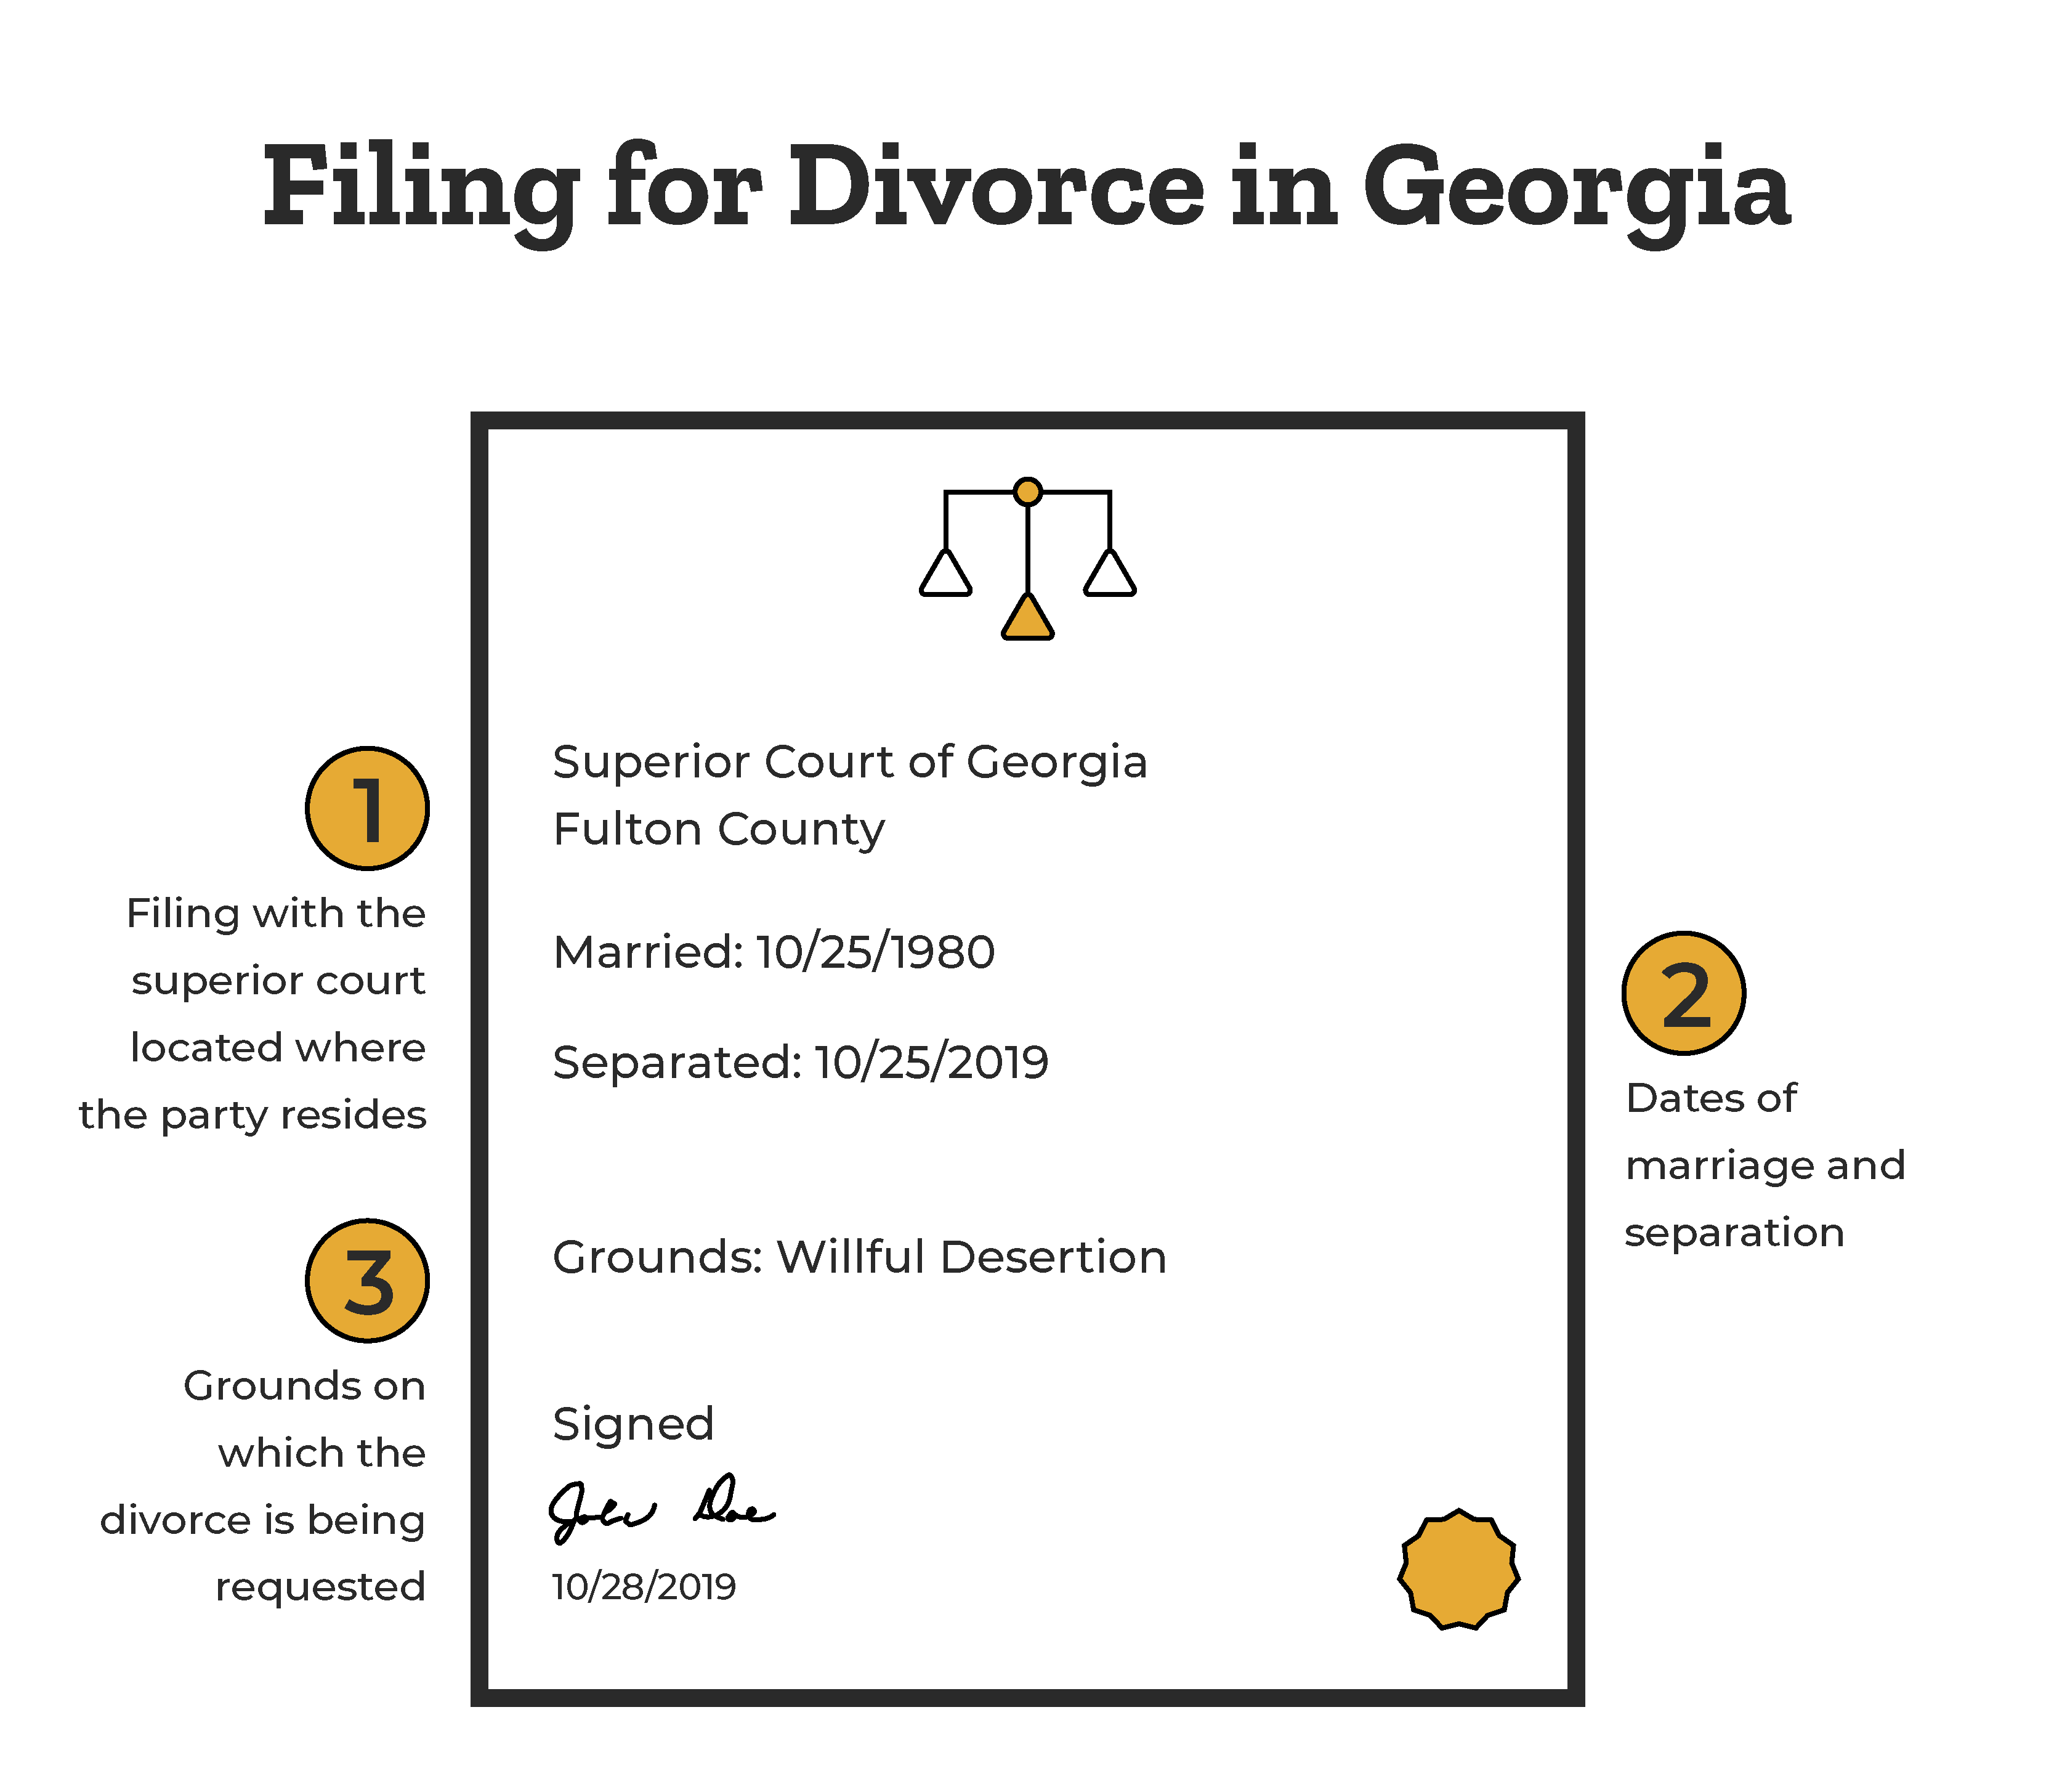 requirements-for-filing-for-divorce-superior-court-dates-grounds